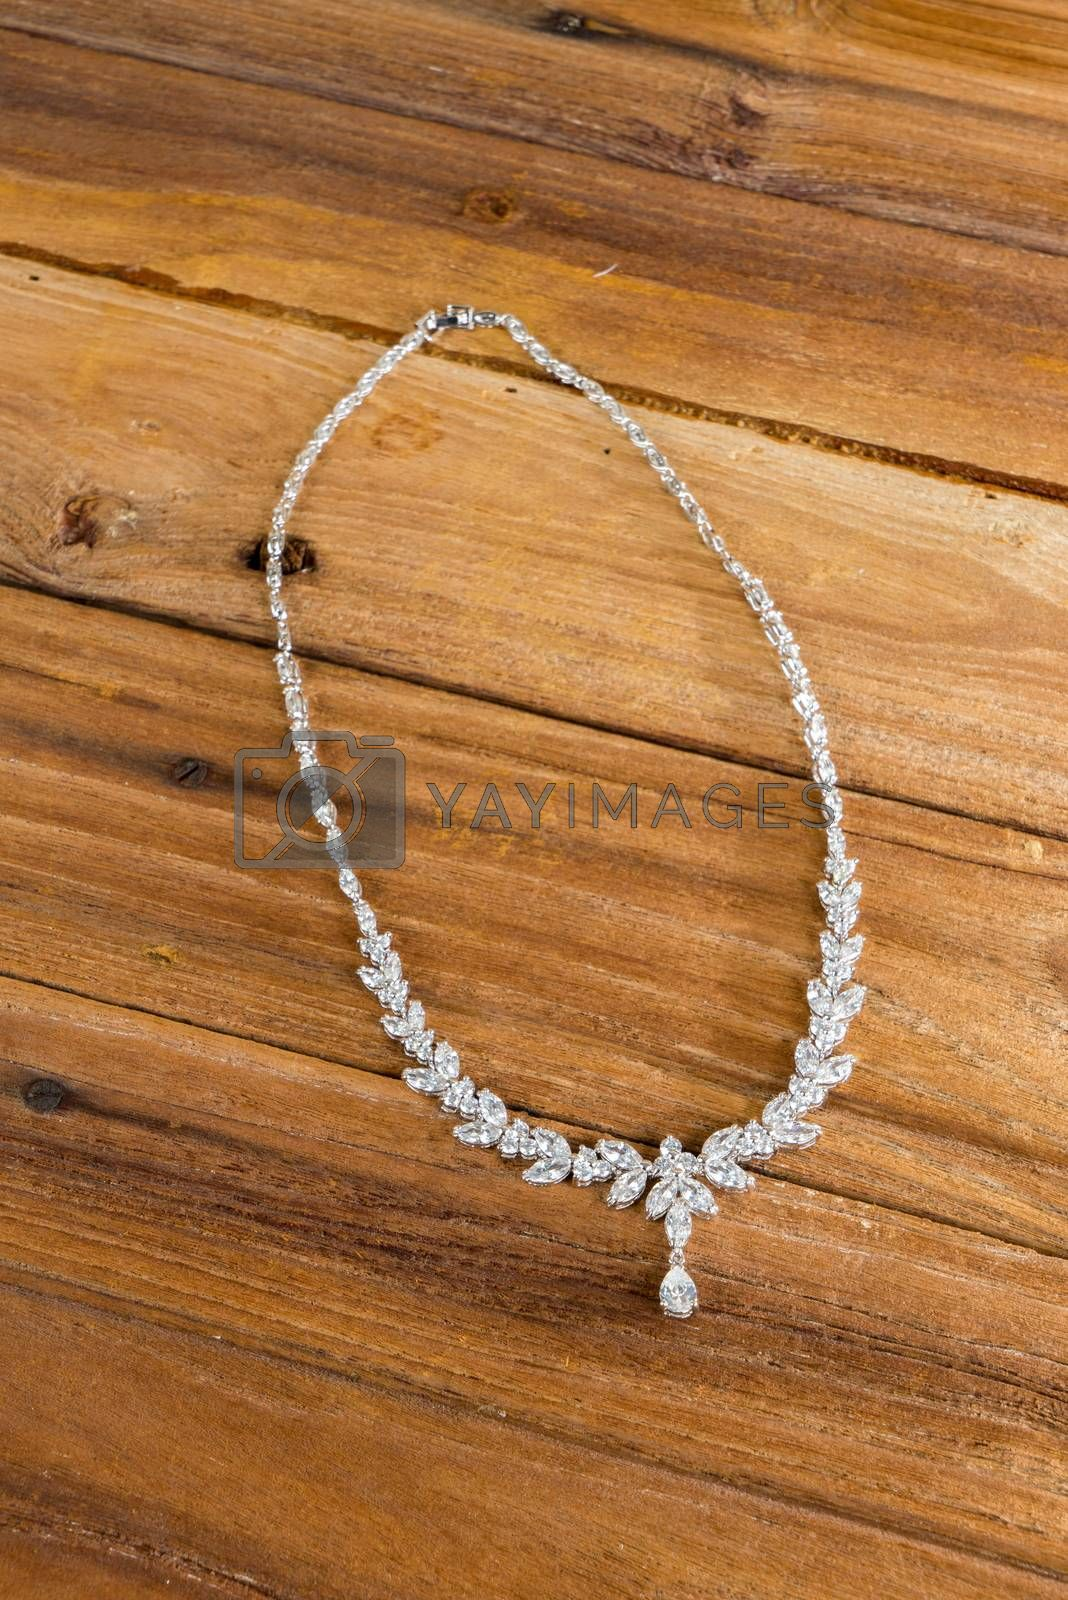 Royalty free image of Diamond necklace on wooden background by iamway